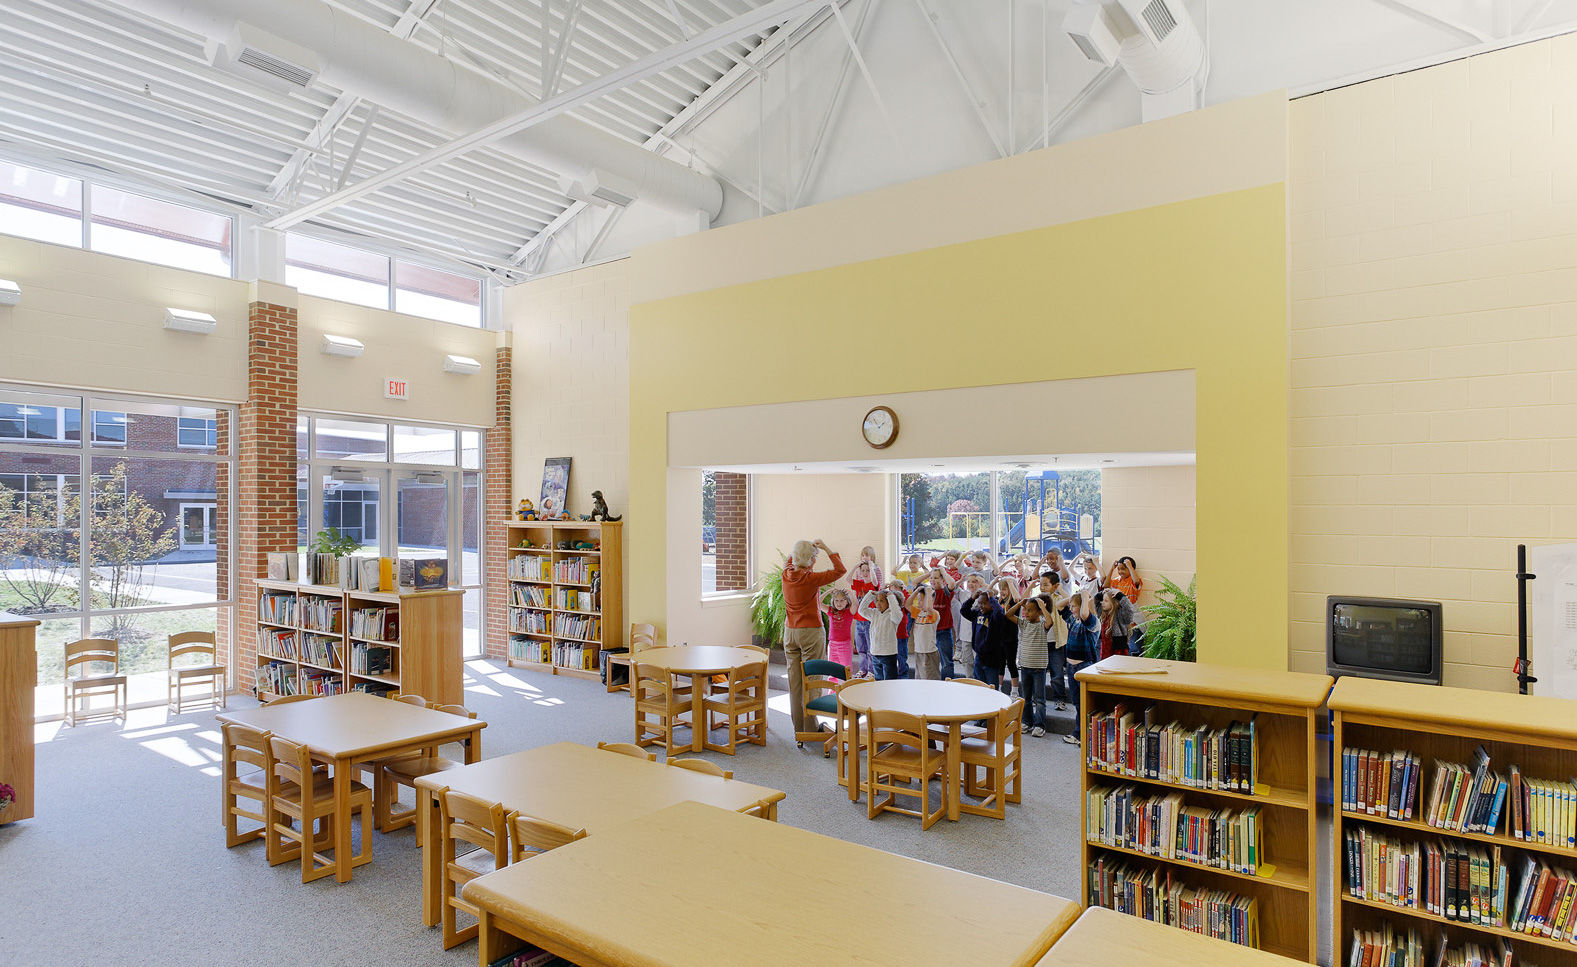 Virginia Hamrick Photography - Elementary School Library